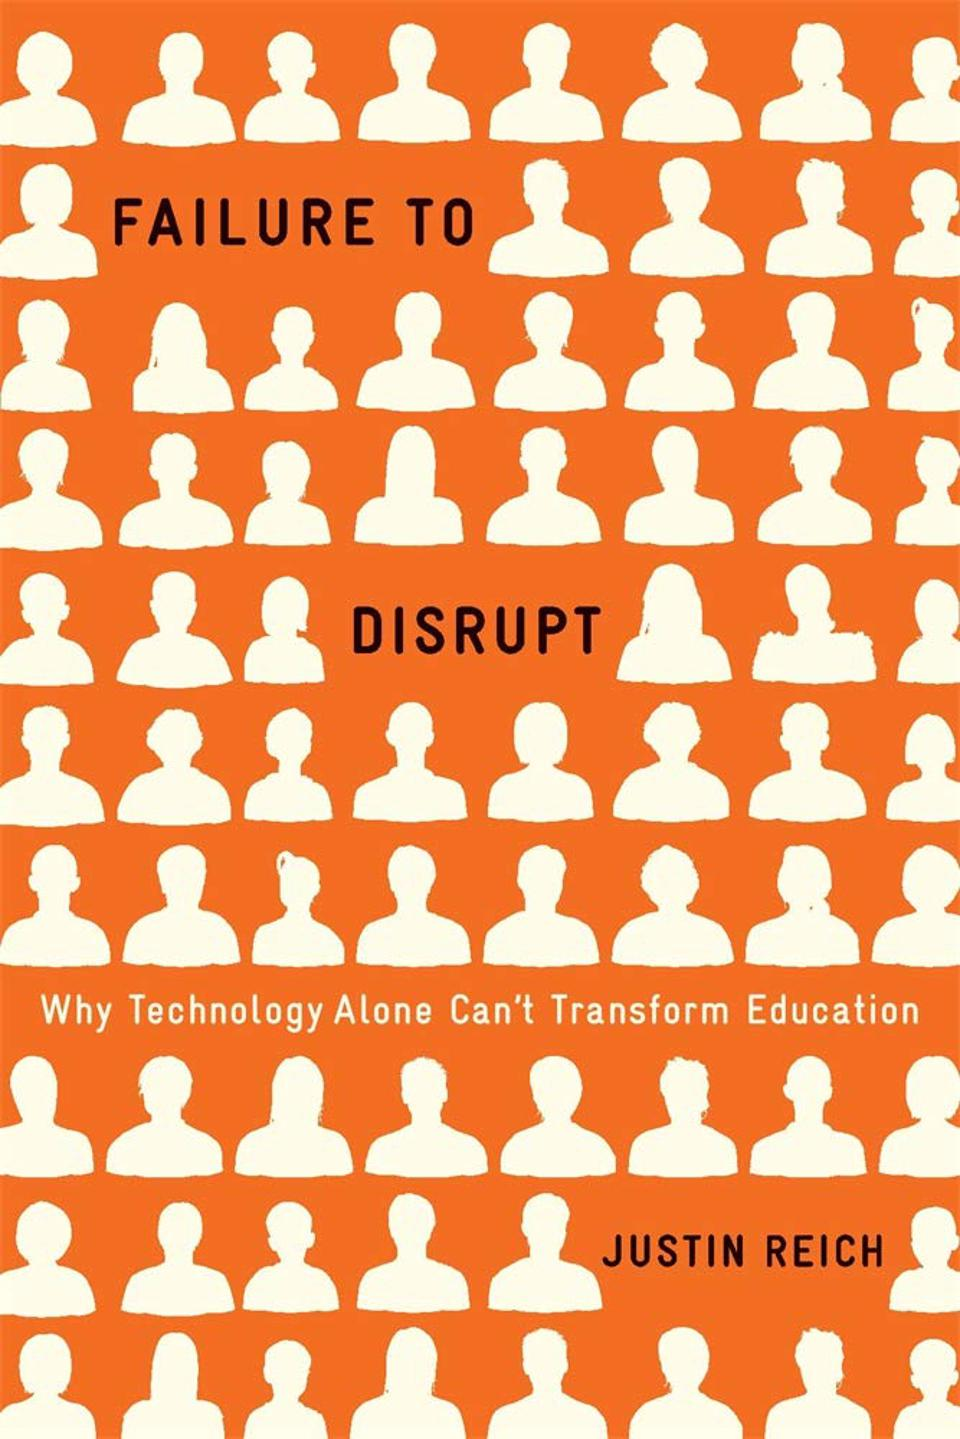 Cover of the book, Failure to Disrupt